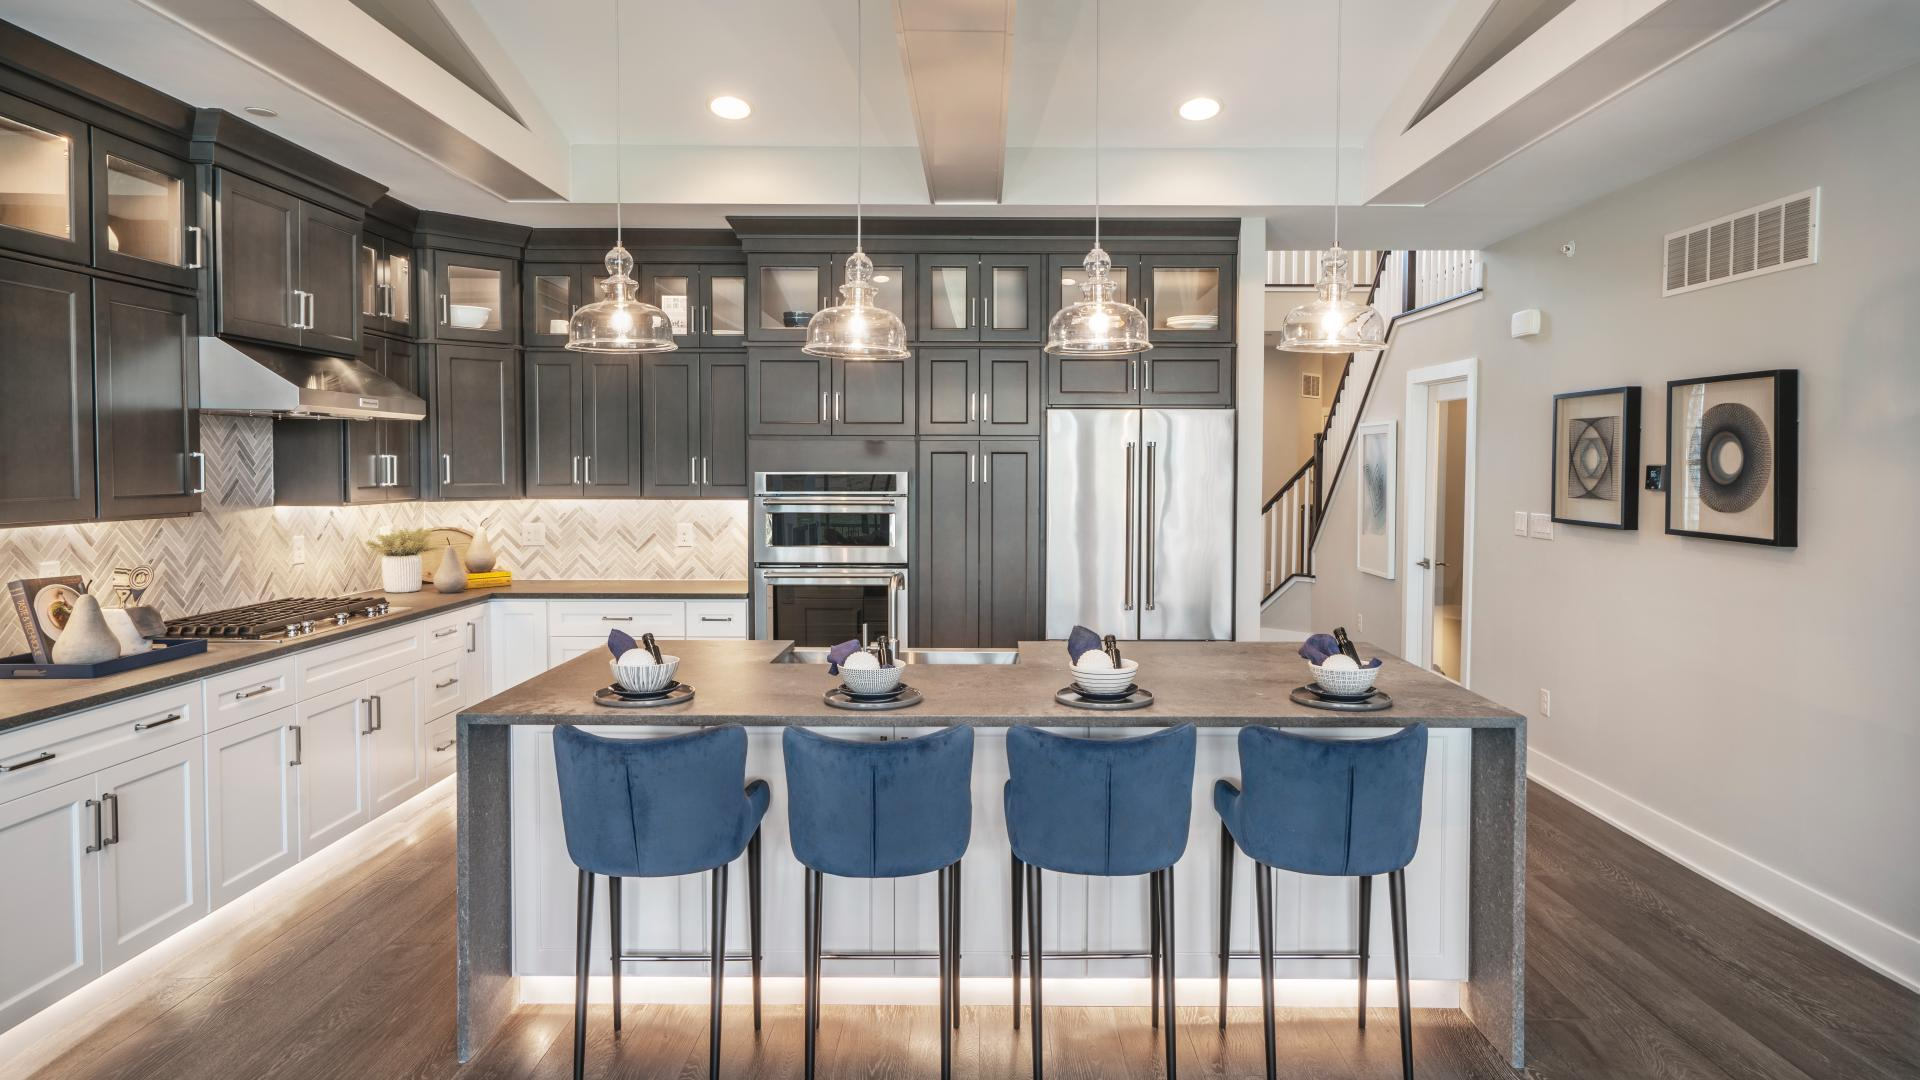 Spacious kitchens with large center islands